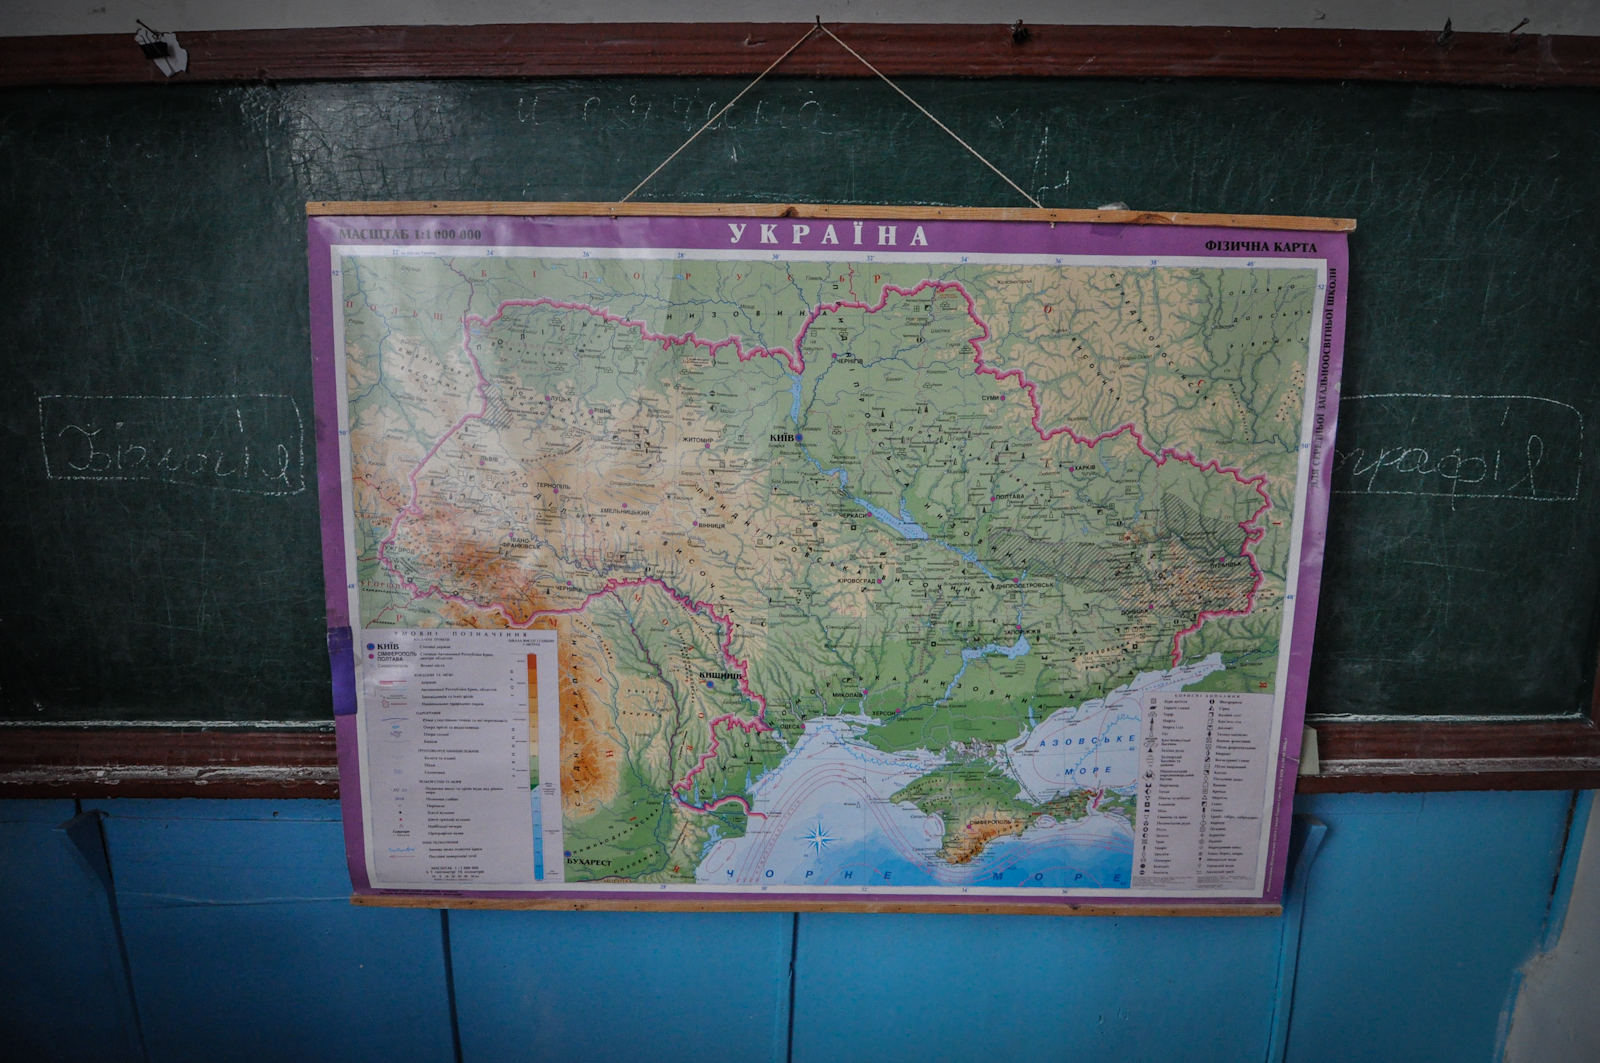 A map of Ukraine in a school near the Exclusion Zone, including Crimea